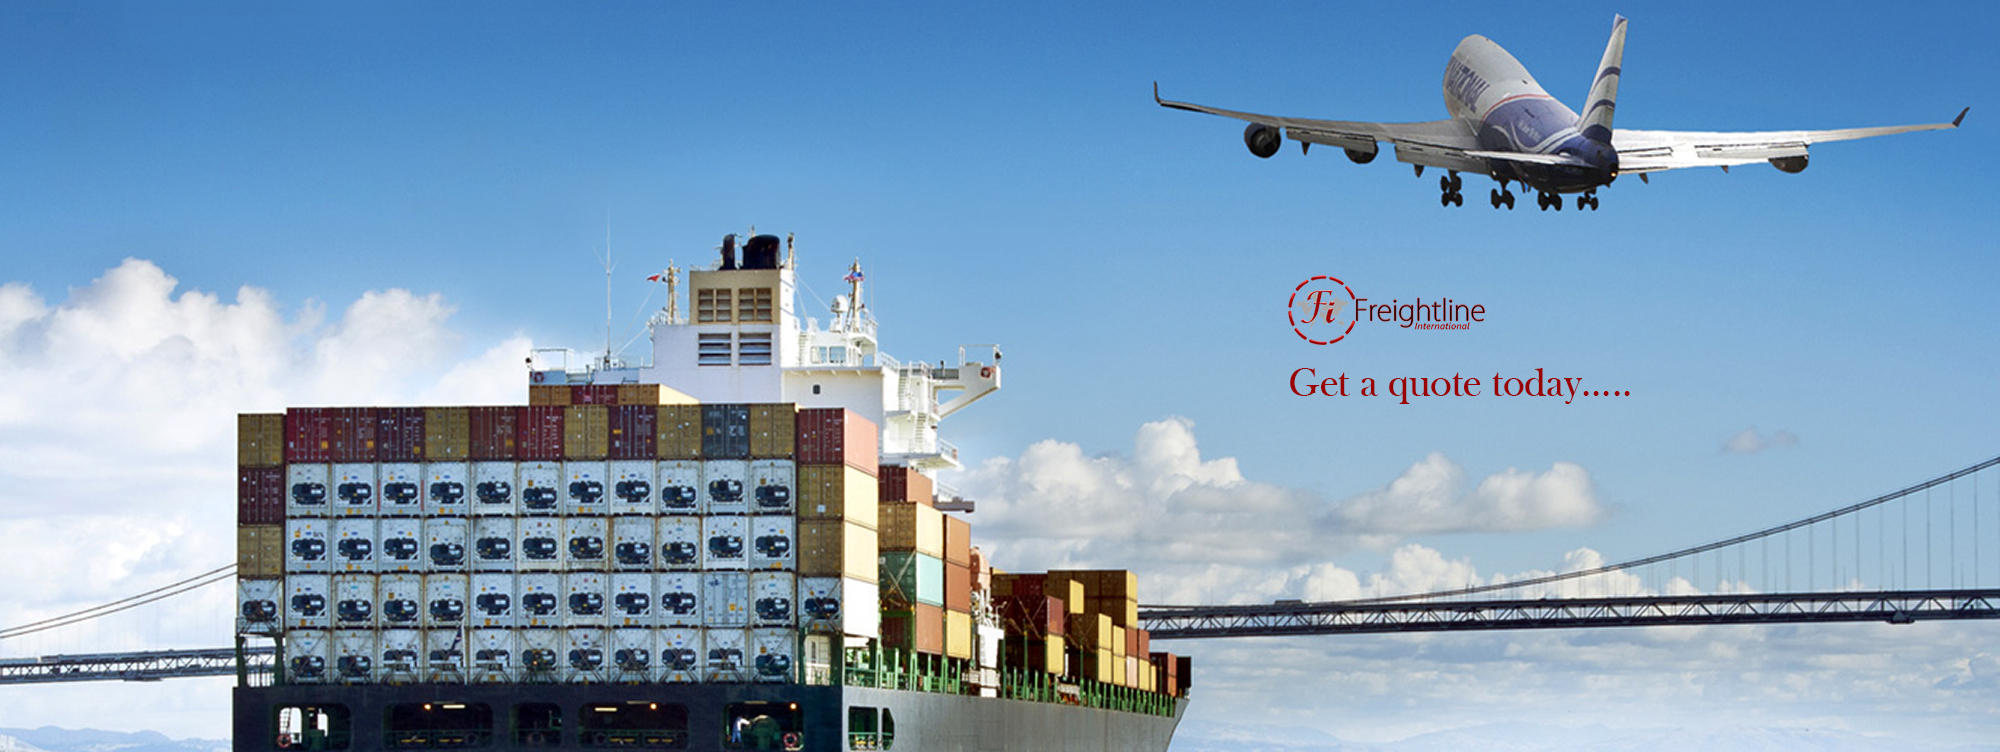 Get-a-Freight-Forward-quote